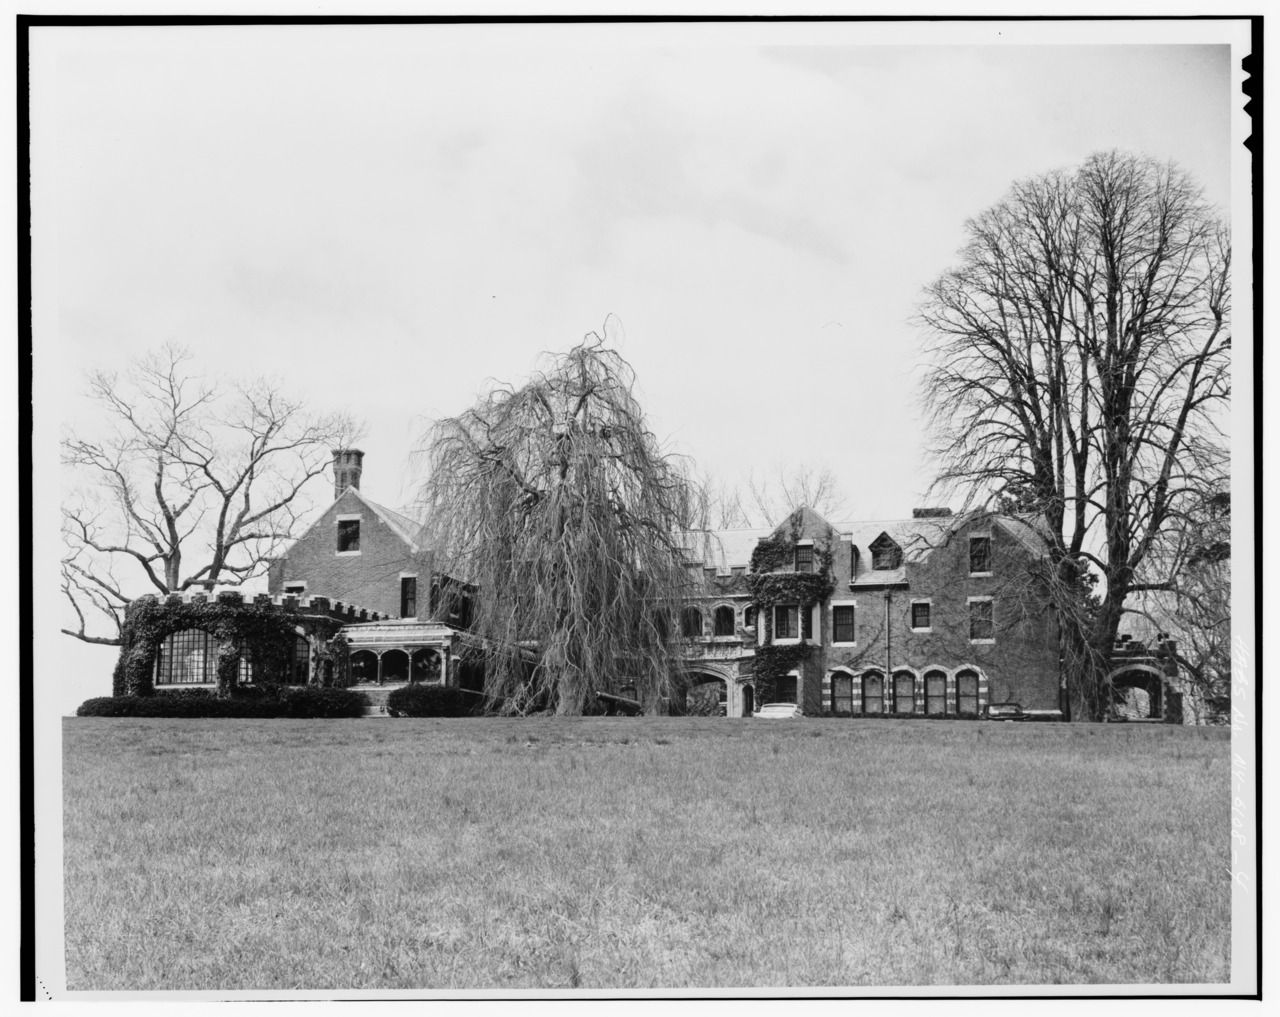 Fort Hill Estate in Huntington (town), New York.